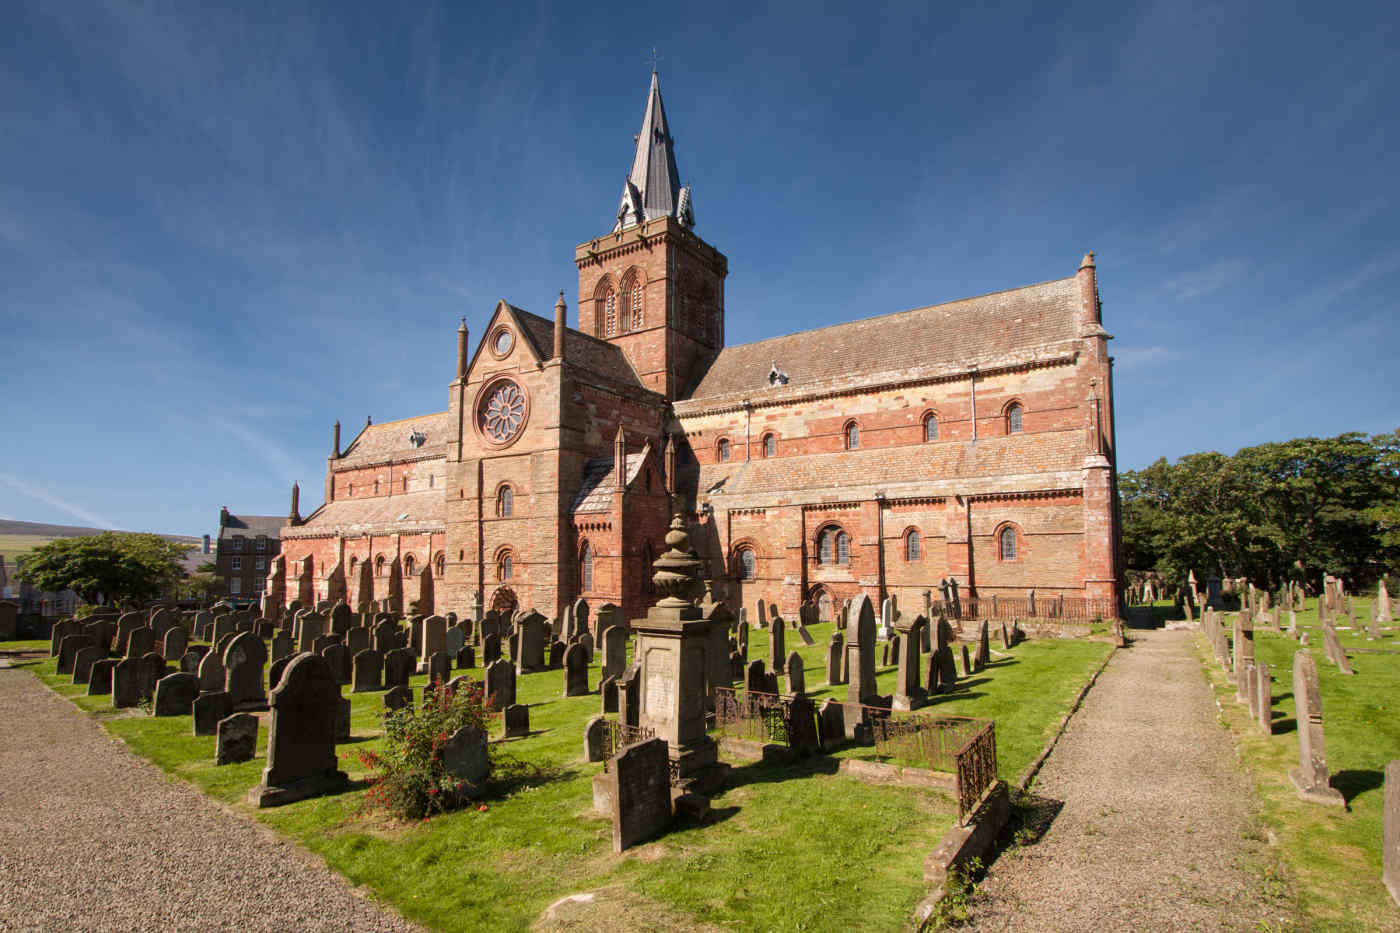 St Magnus Cathedral in Kirkwall, Scotland